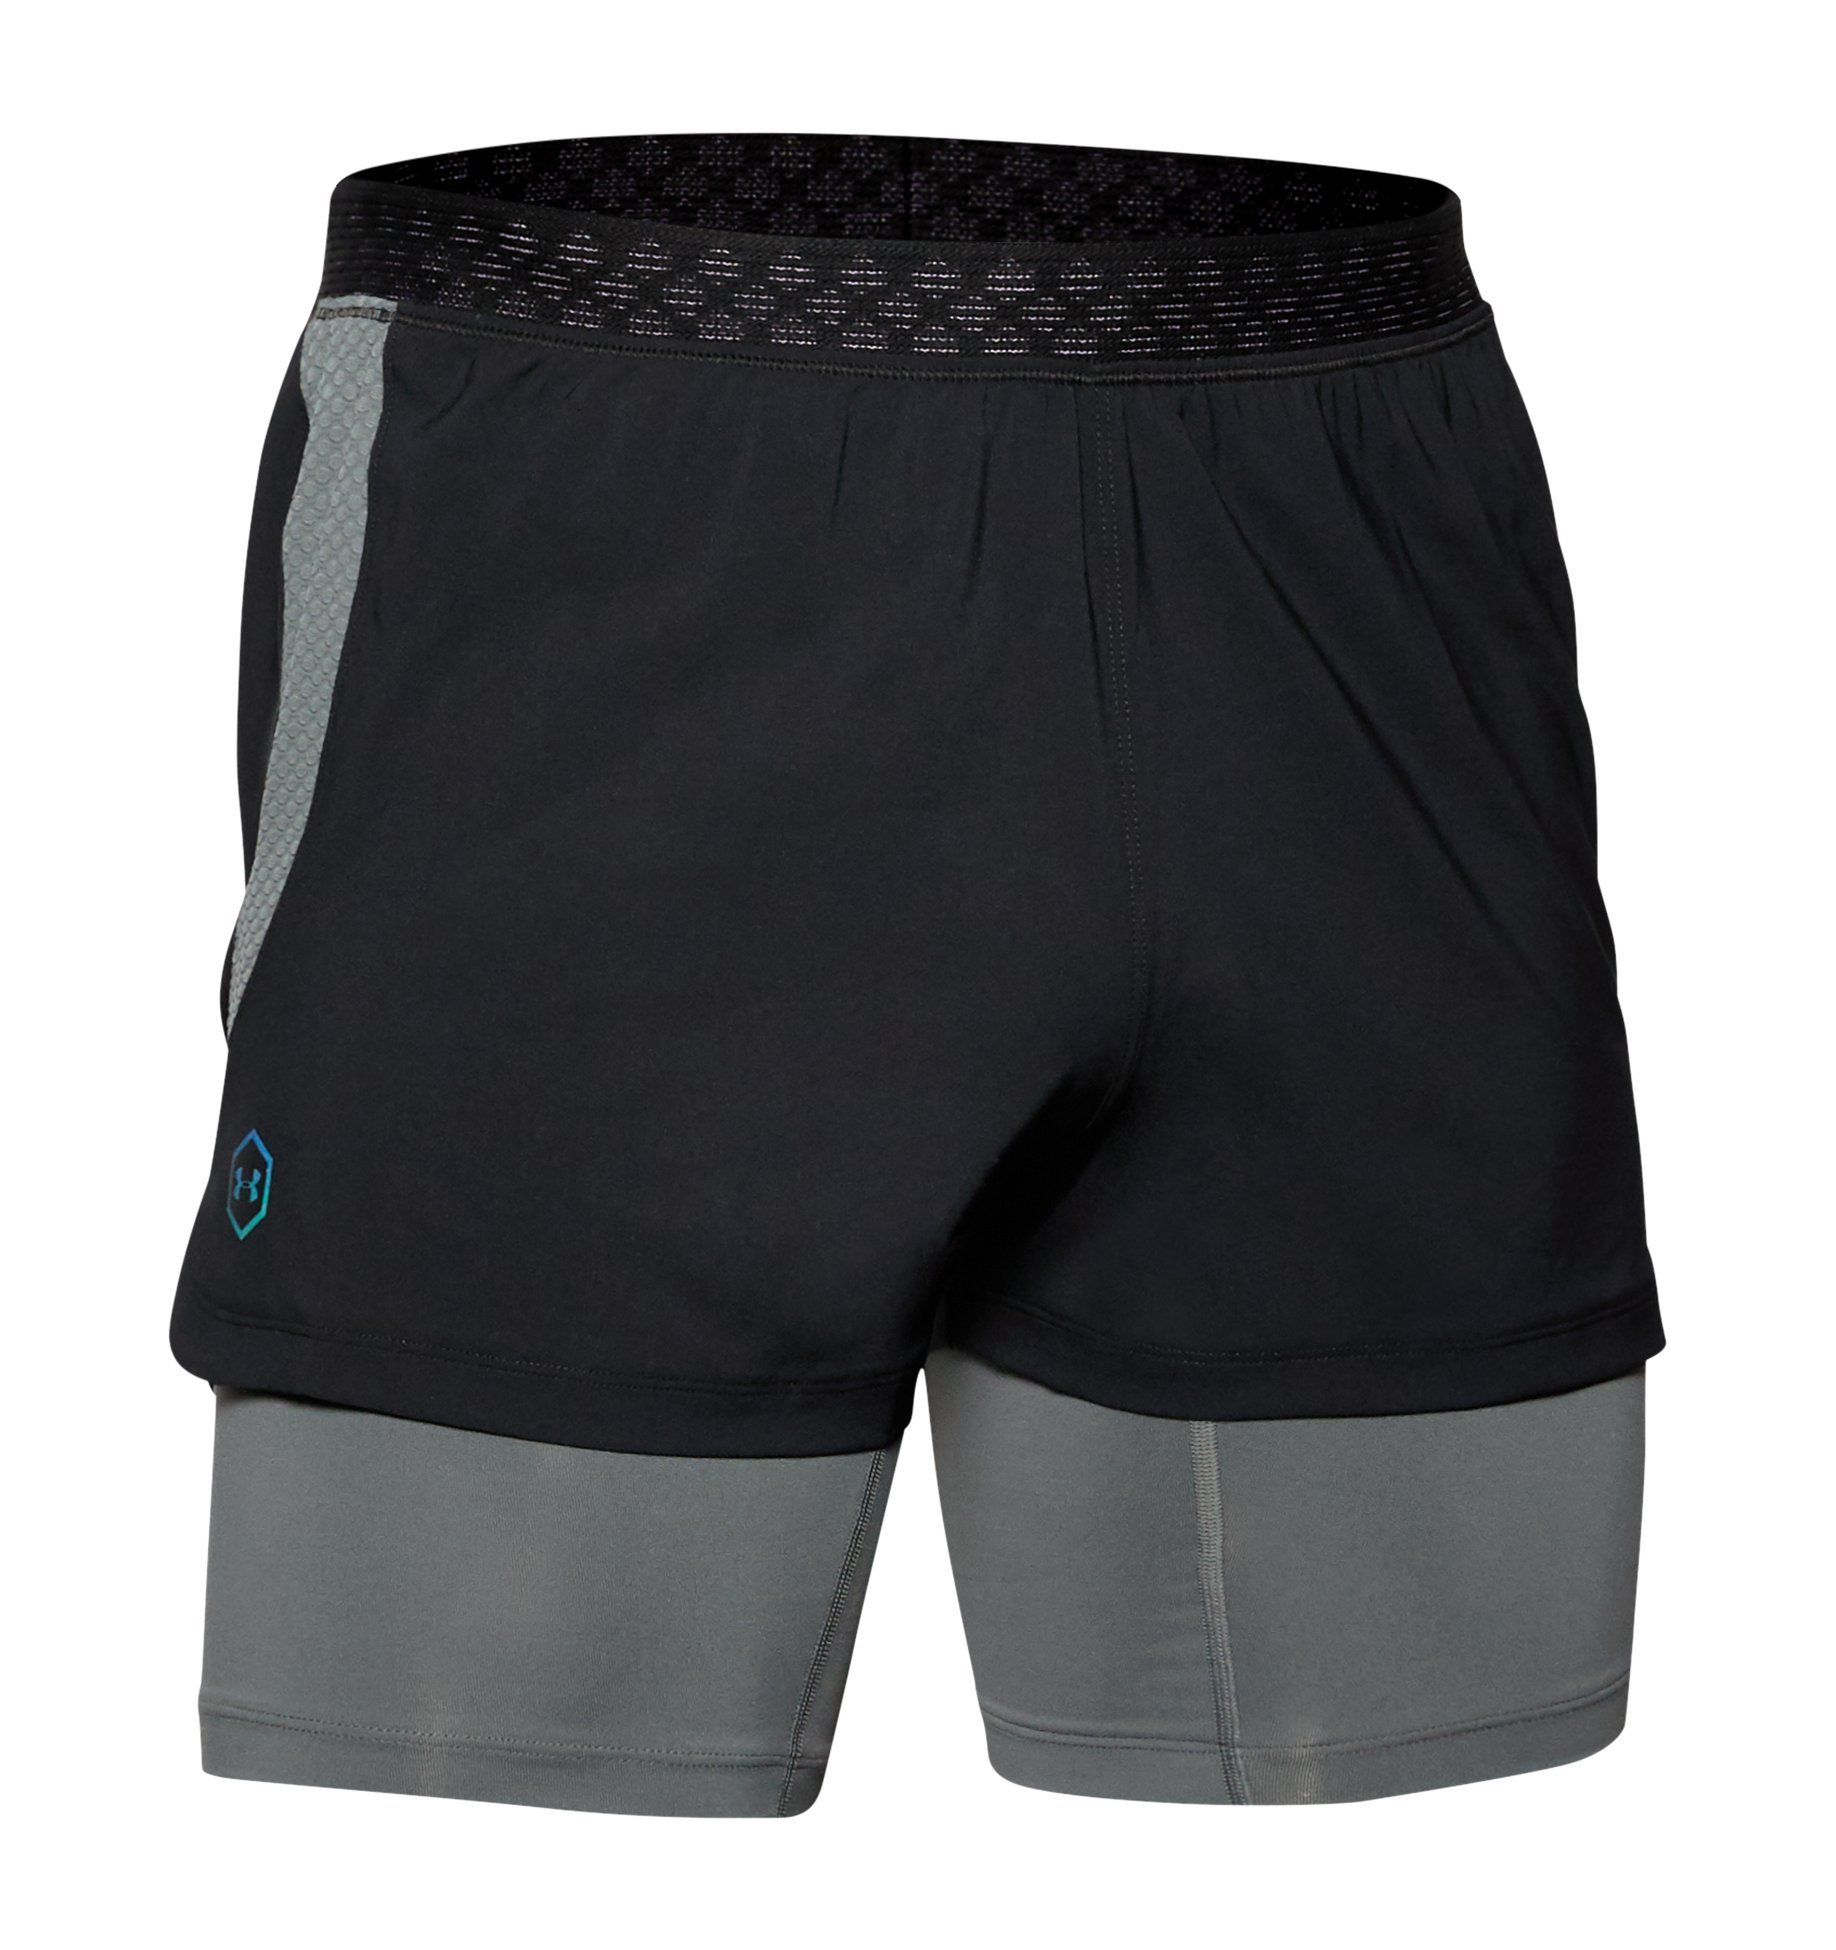 The 14 Best Pairs Of Running Shorts For Men For Races In 2020